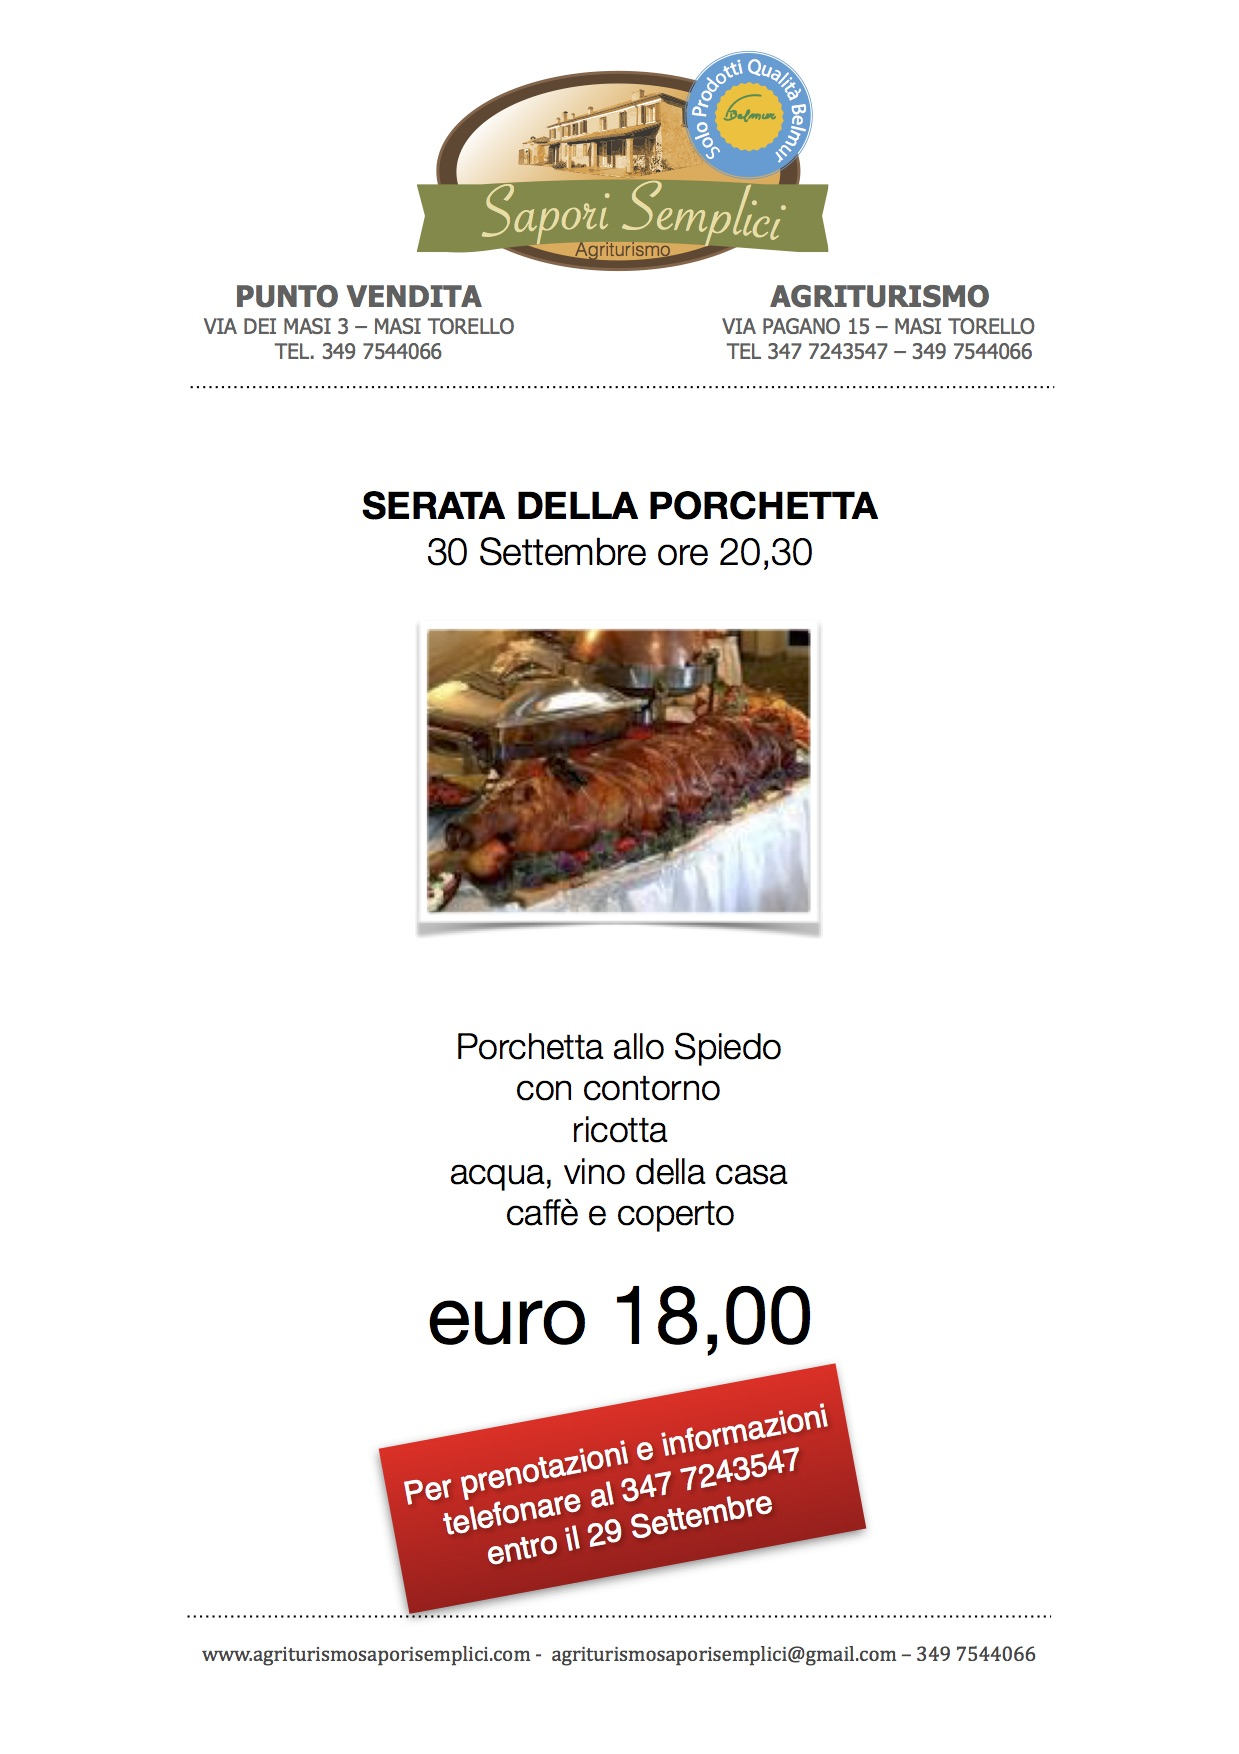 Sap semp Porchetta set2016.jpg